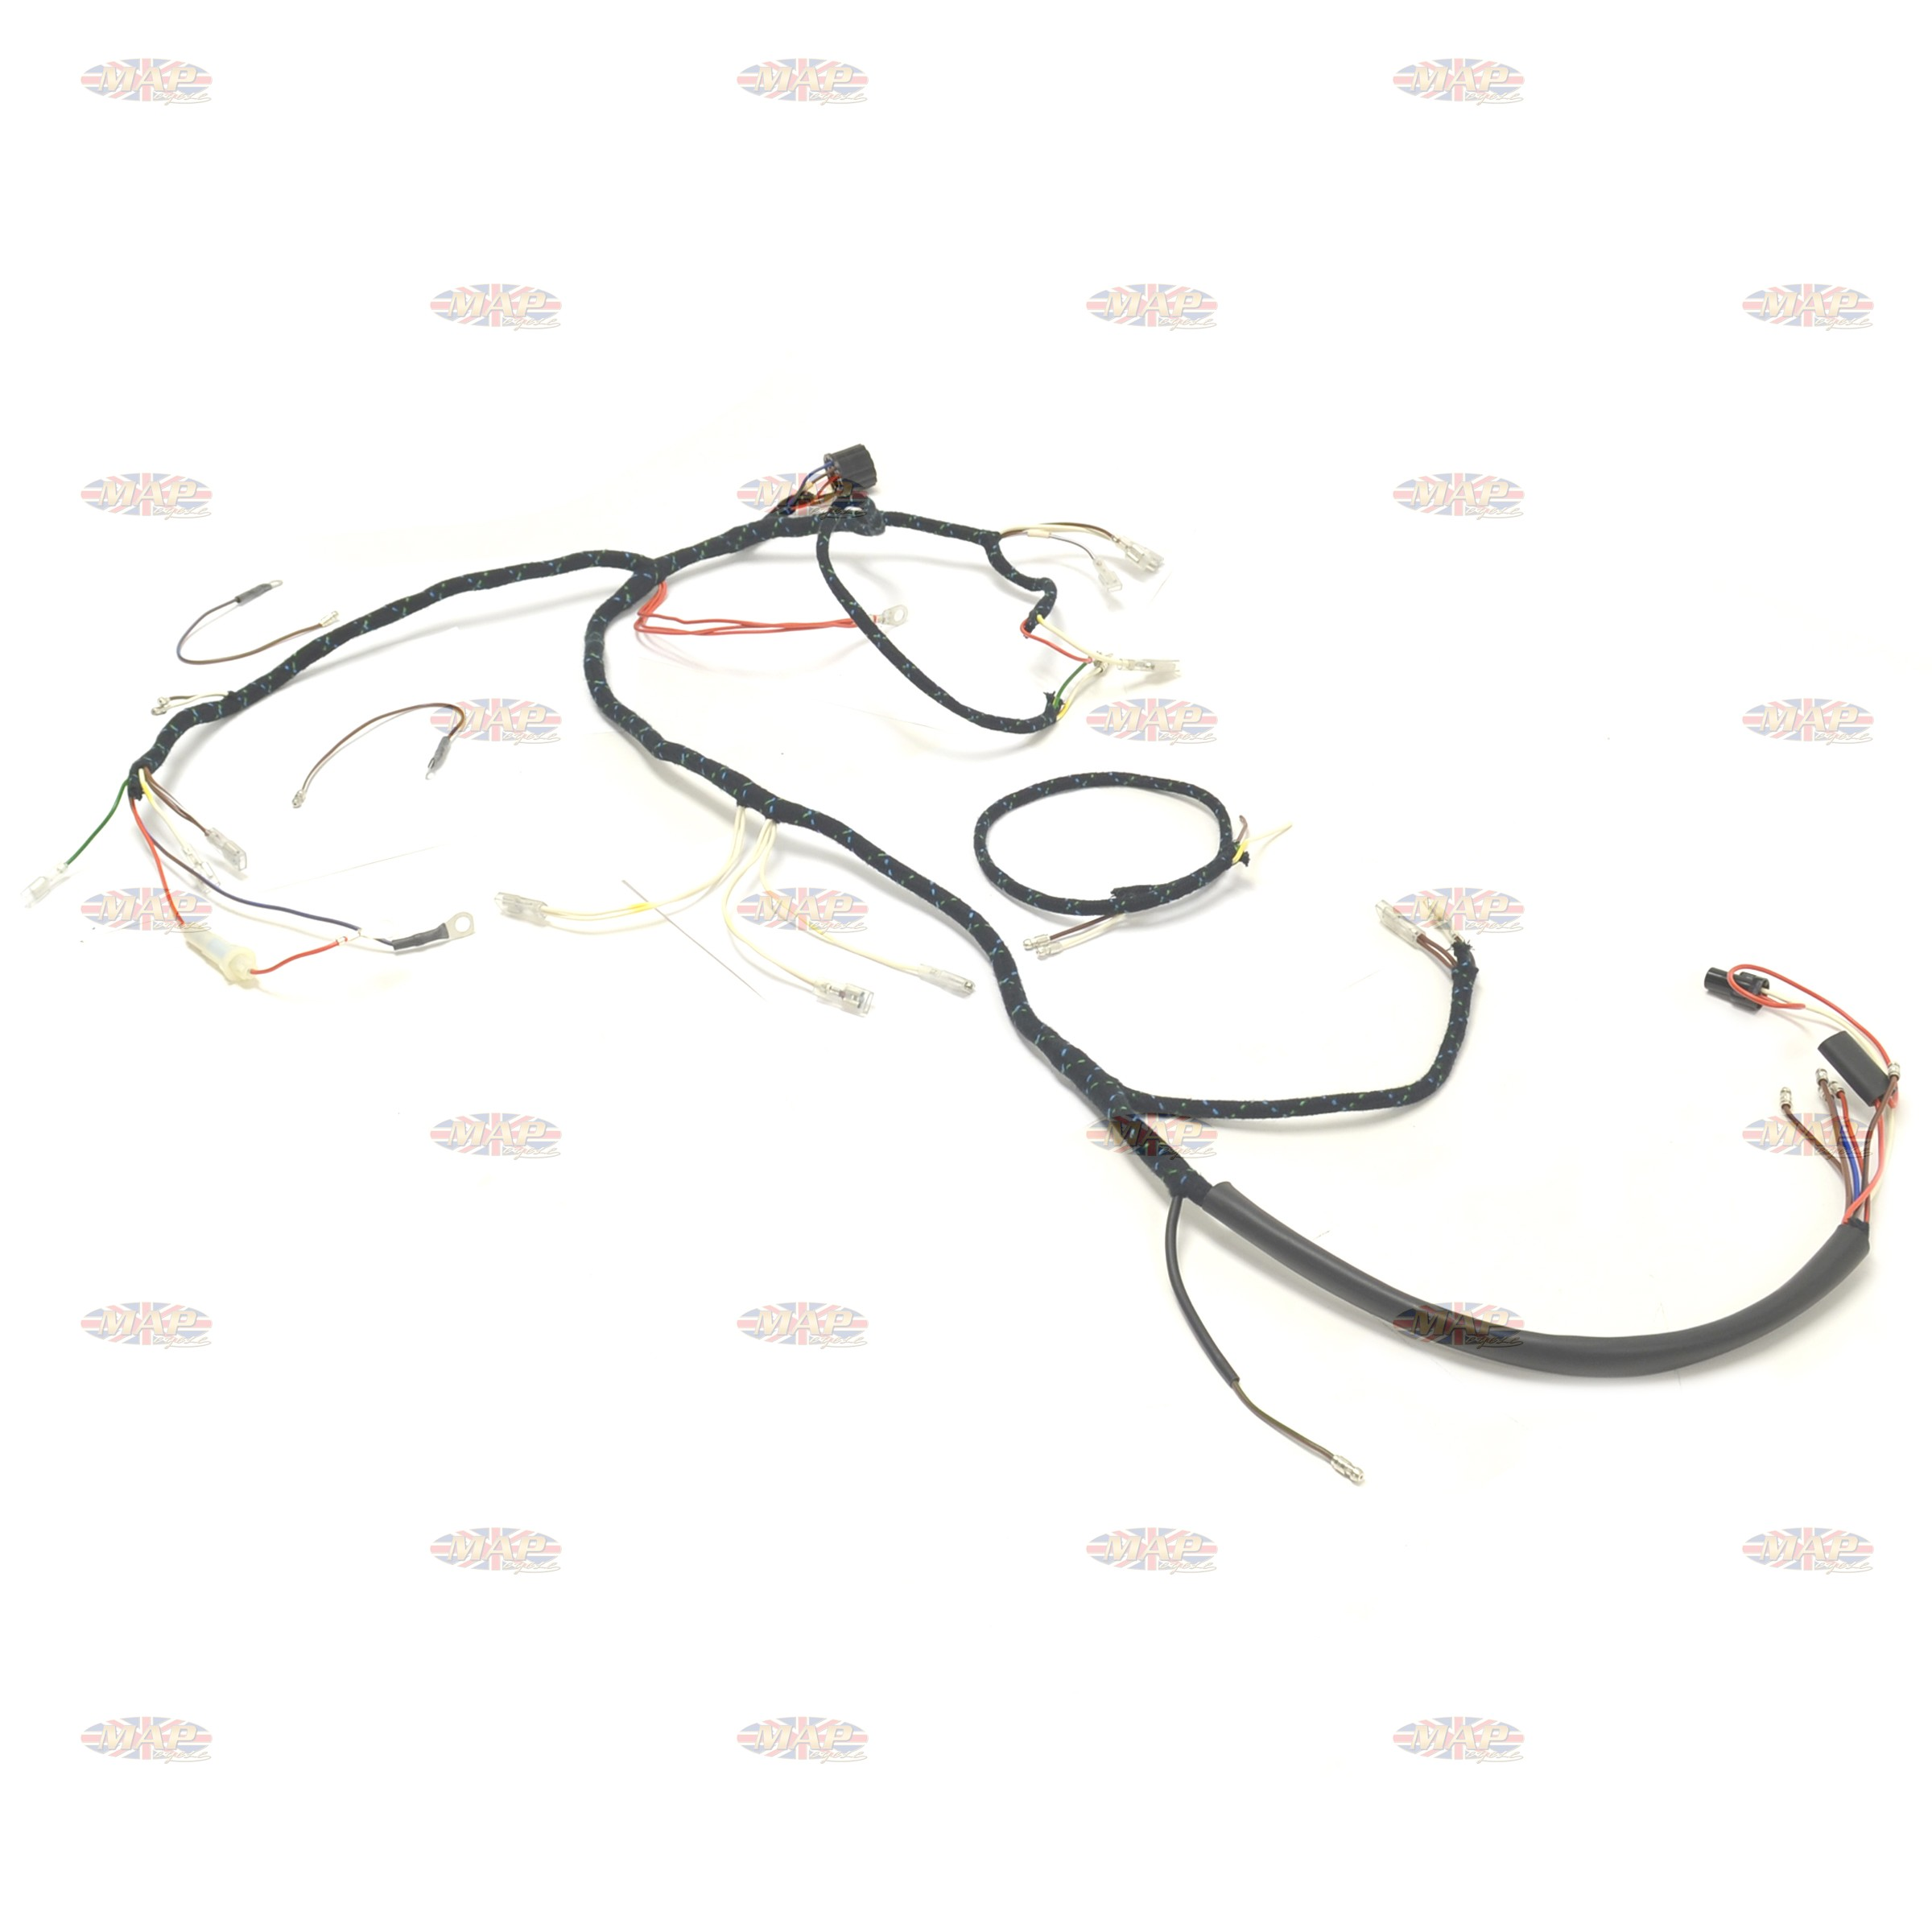 triumph 1966 t90 t100 t120 tr6 uk made 12 volt wiring harness 783 triumph 1966 t90 t100 t120 tr6 uk made 12 volt wiring harness triumph t140 wiring harness at couponss.co